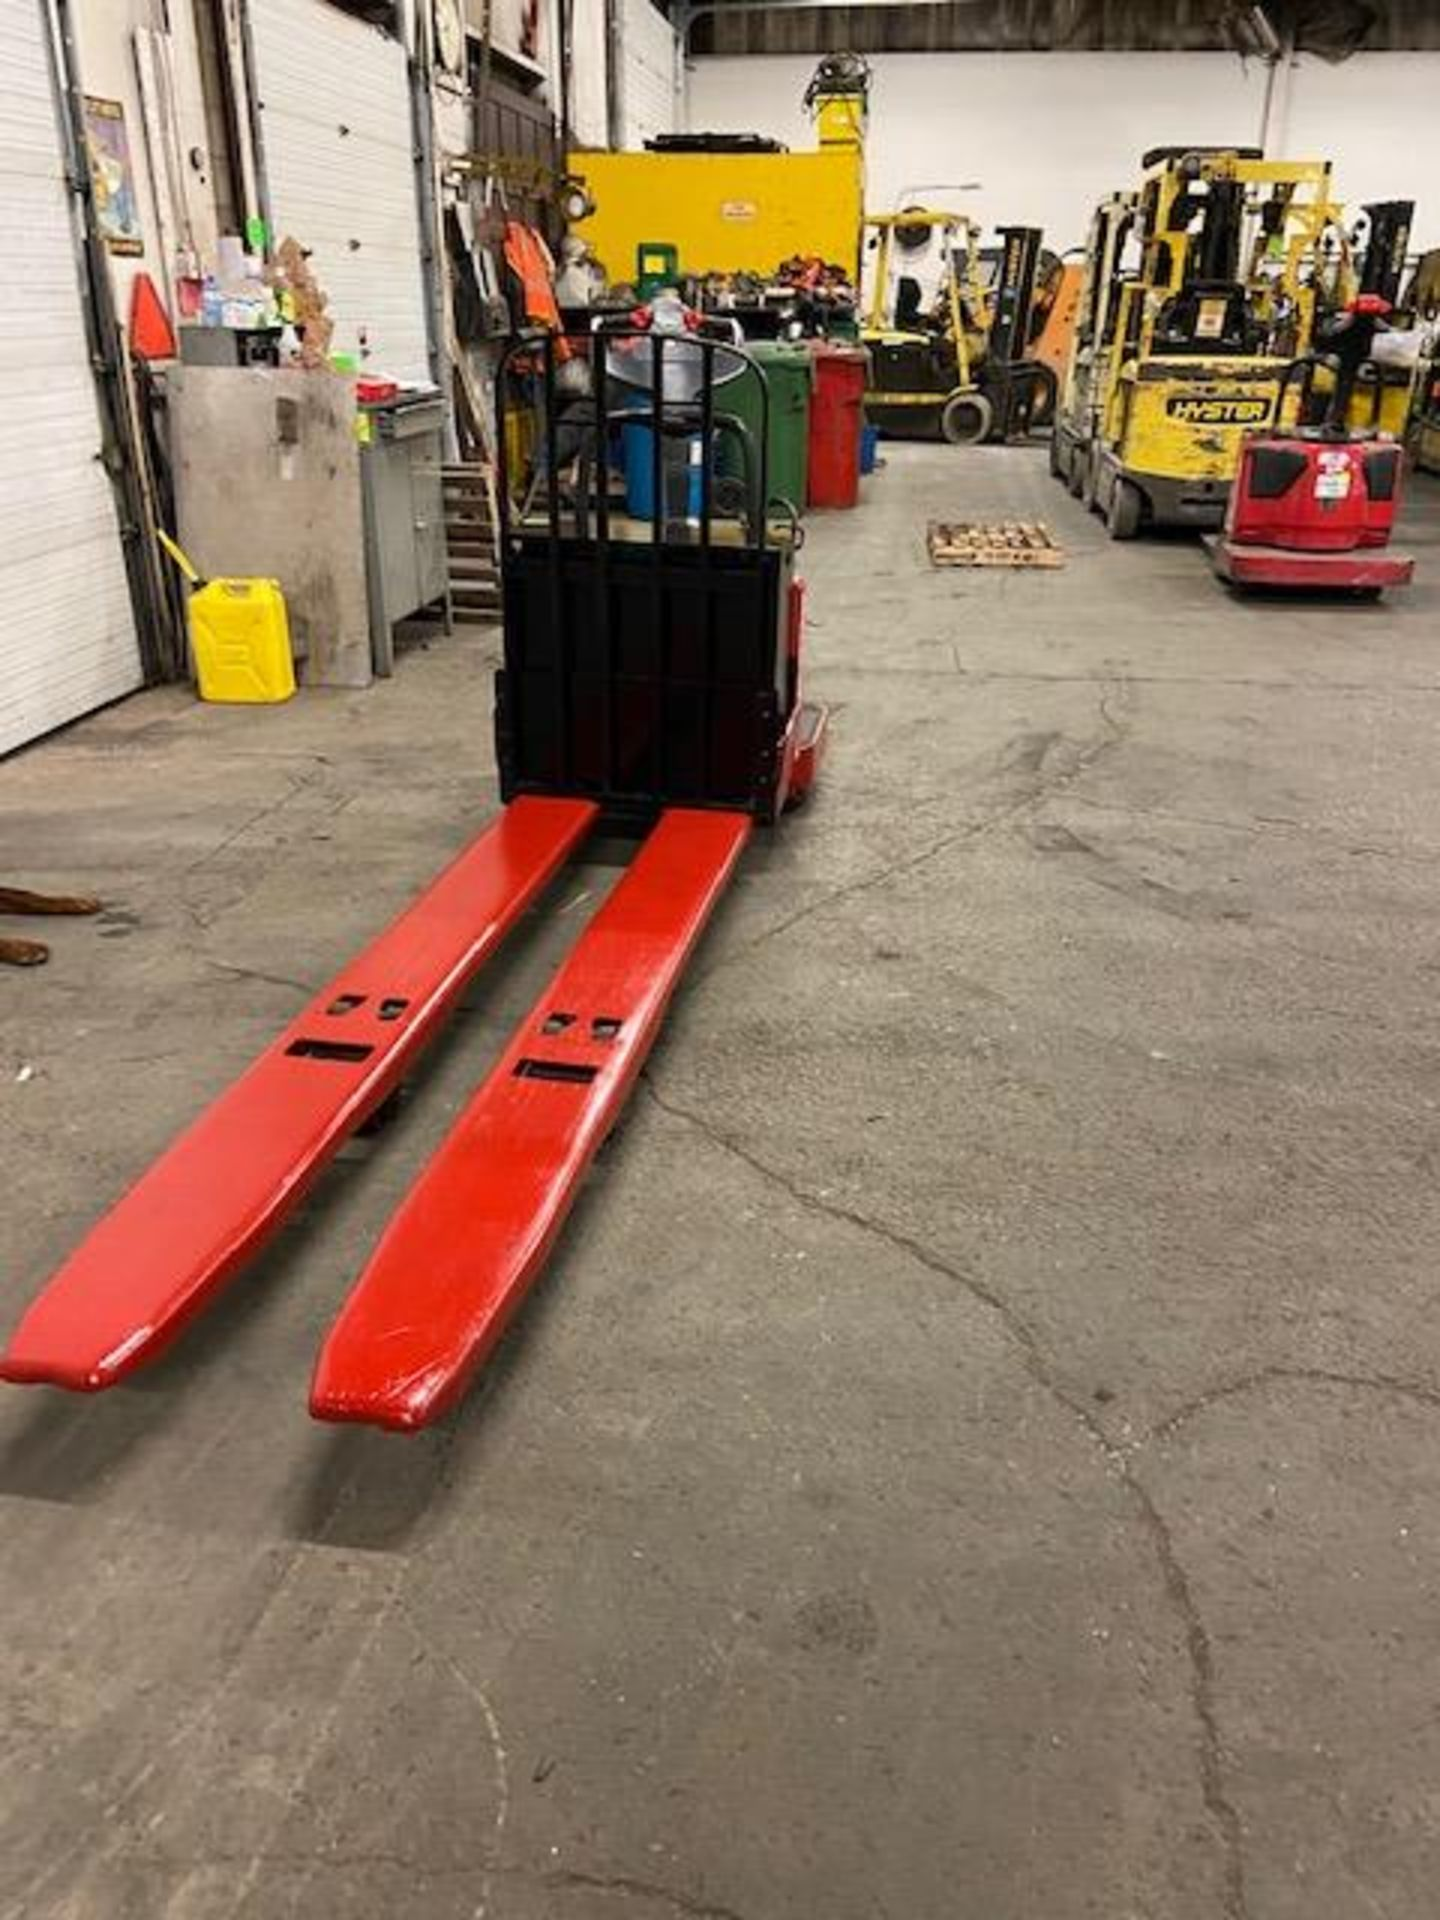 Raymond Electric Ride on Powered Pallet Cart Lift 8000lbs capacity 8' Long NICE - Image 3 of 3